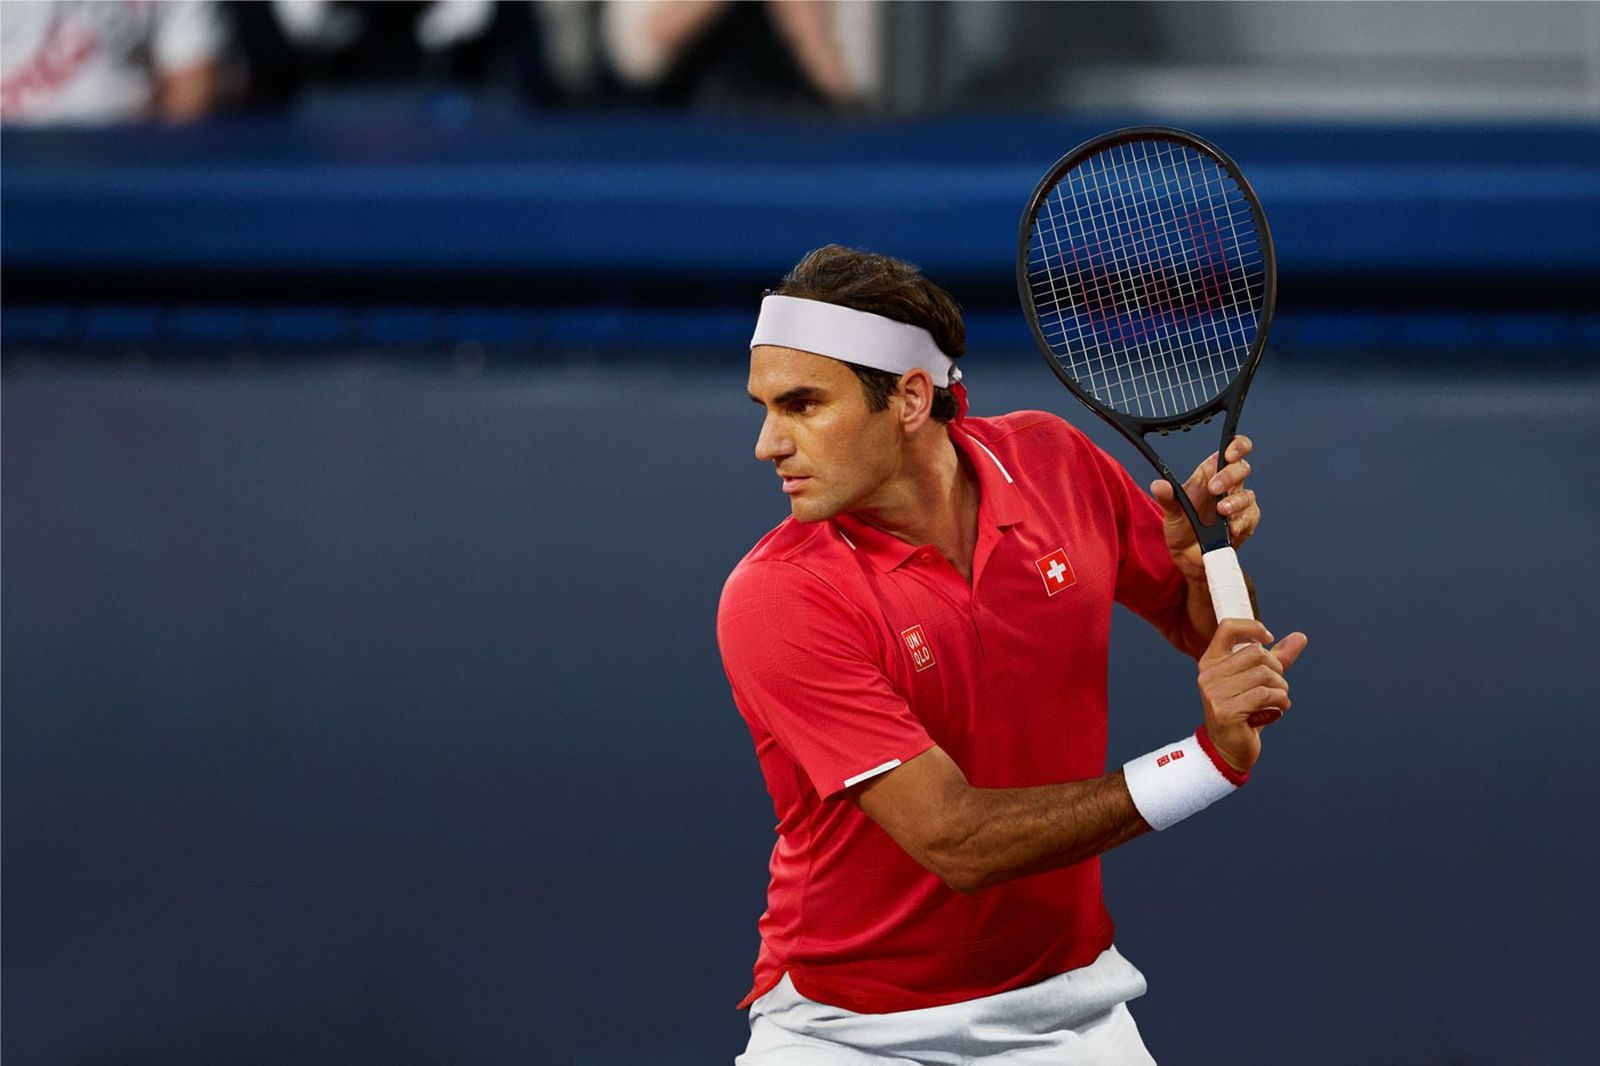 roger-federer-uniqlo-2021-game-wear-collection-01